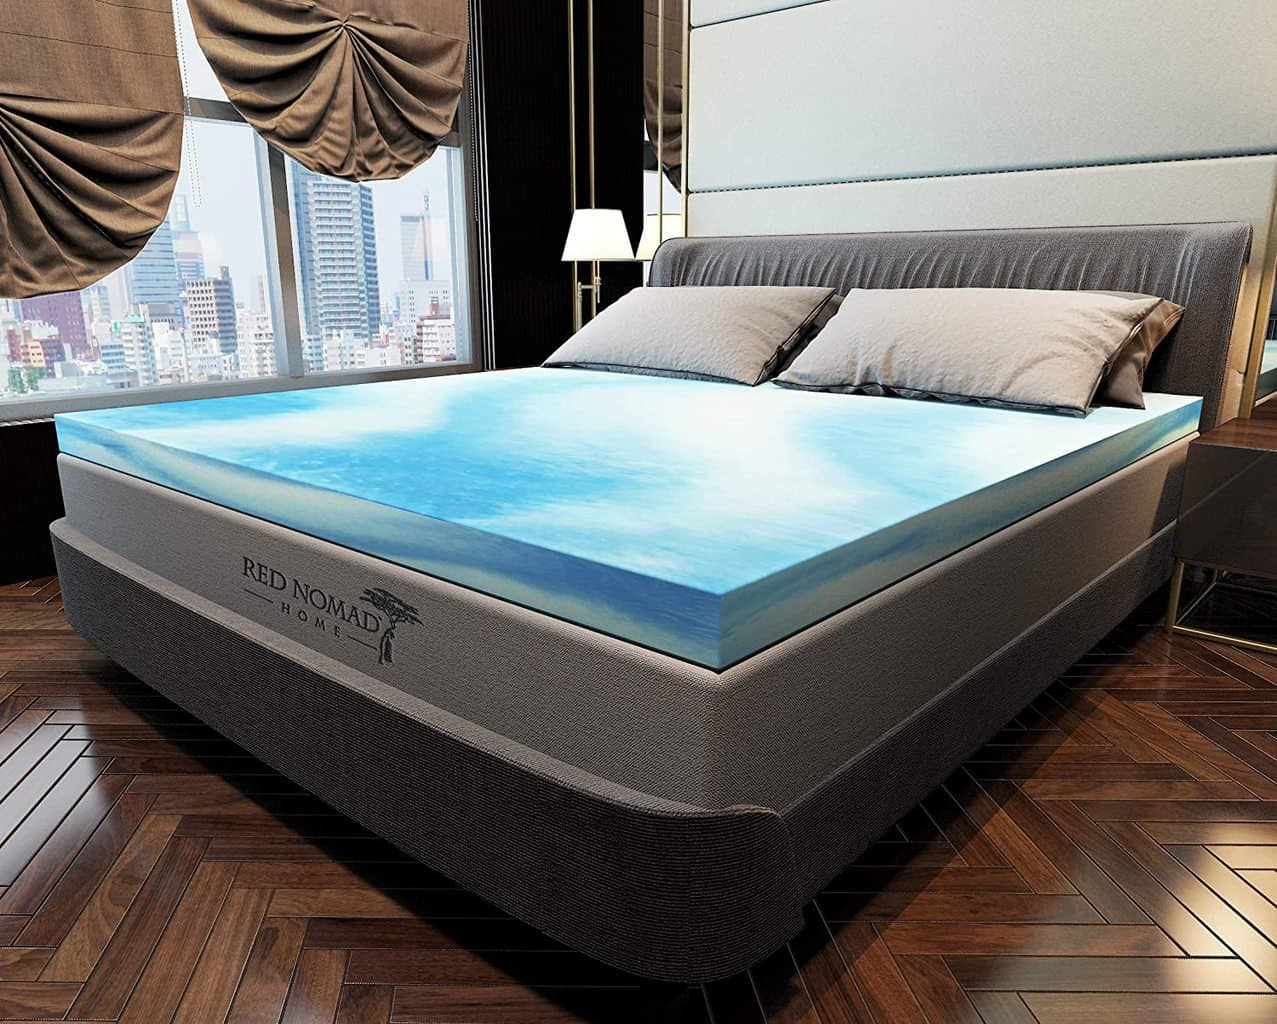 12. Red Nomad Gel Memory Foam Mattress 2 inches Pad